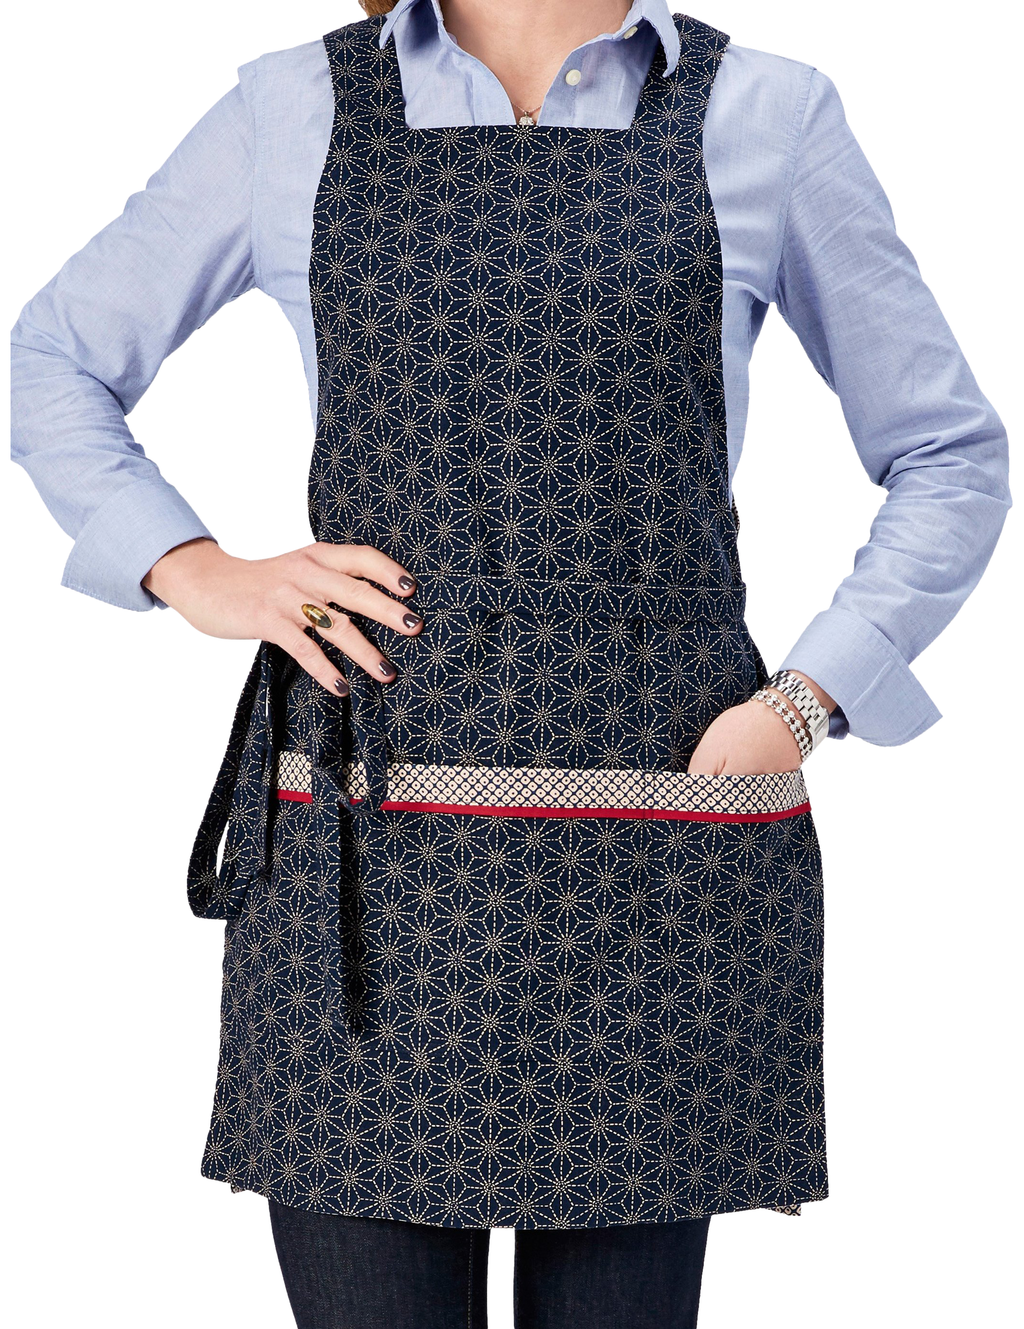 Japanese apron in a Kasuri-inspired print of stitched stars on one side reversing to an ikat dot print on the other in navy and ivory, star print side, front view.